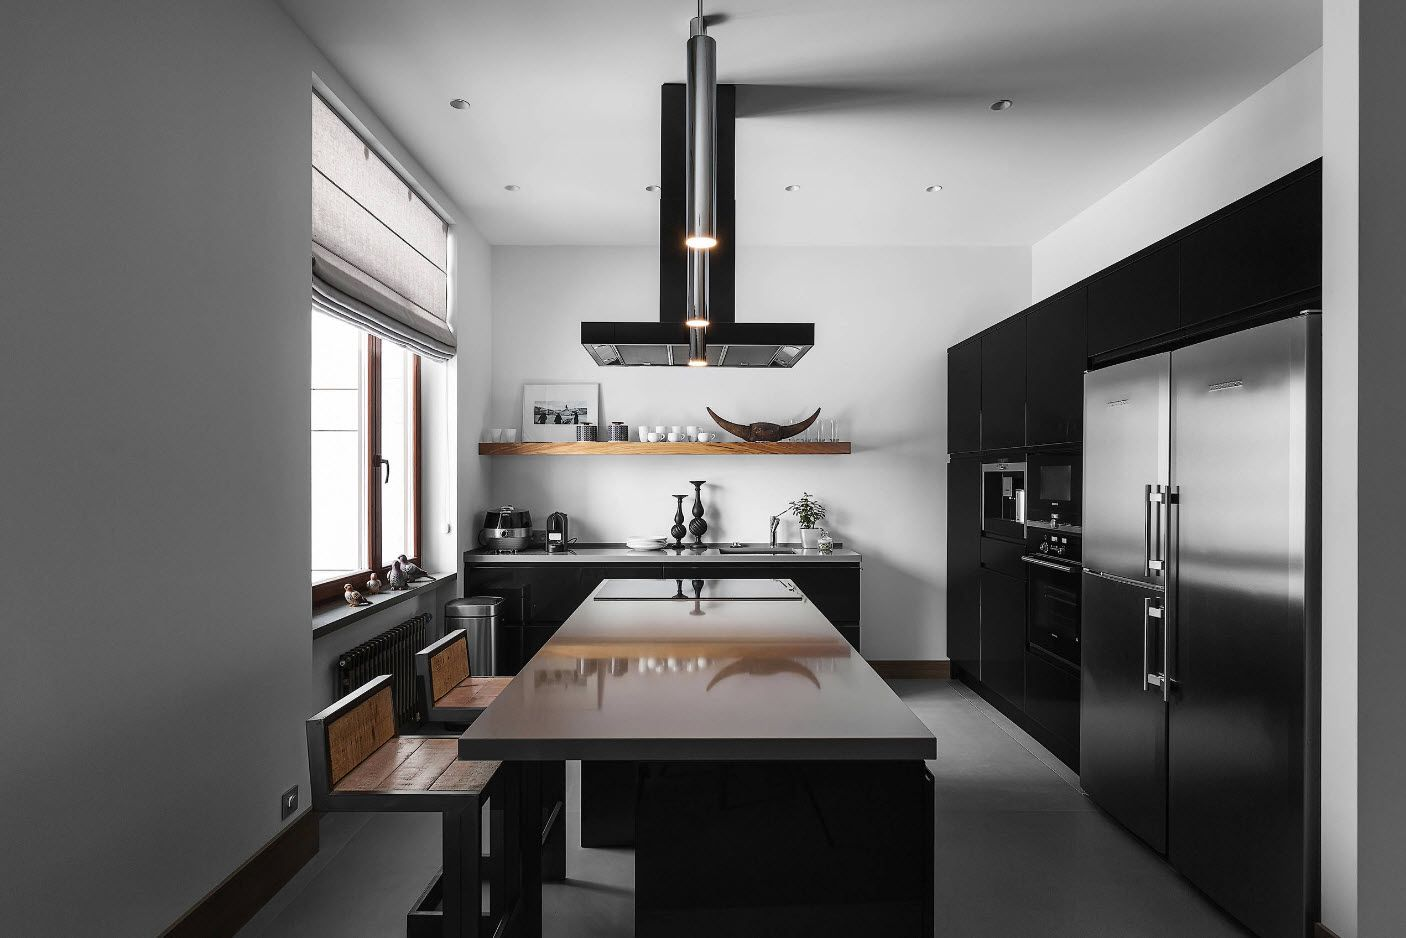 Central allocation of extractor hood in the modern hi-tech contrasting kitchen